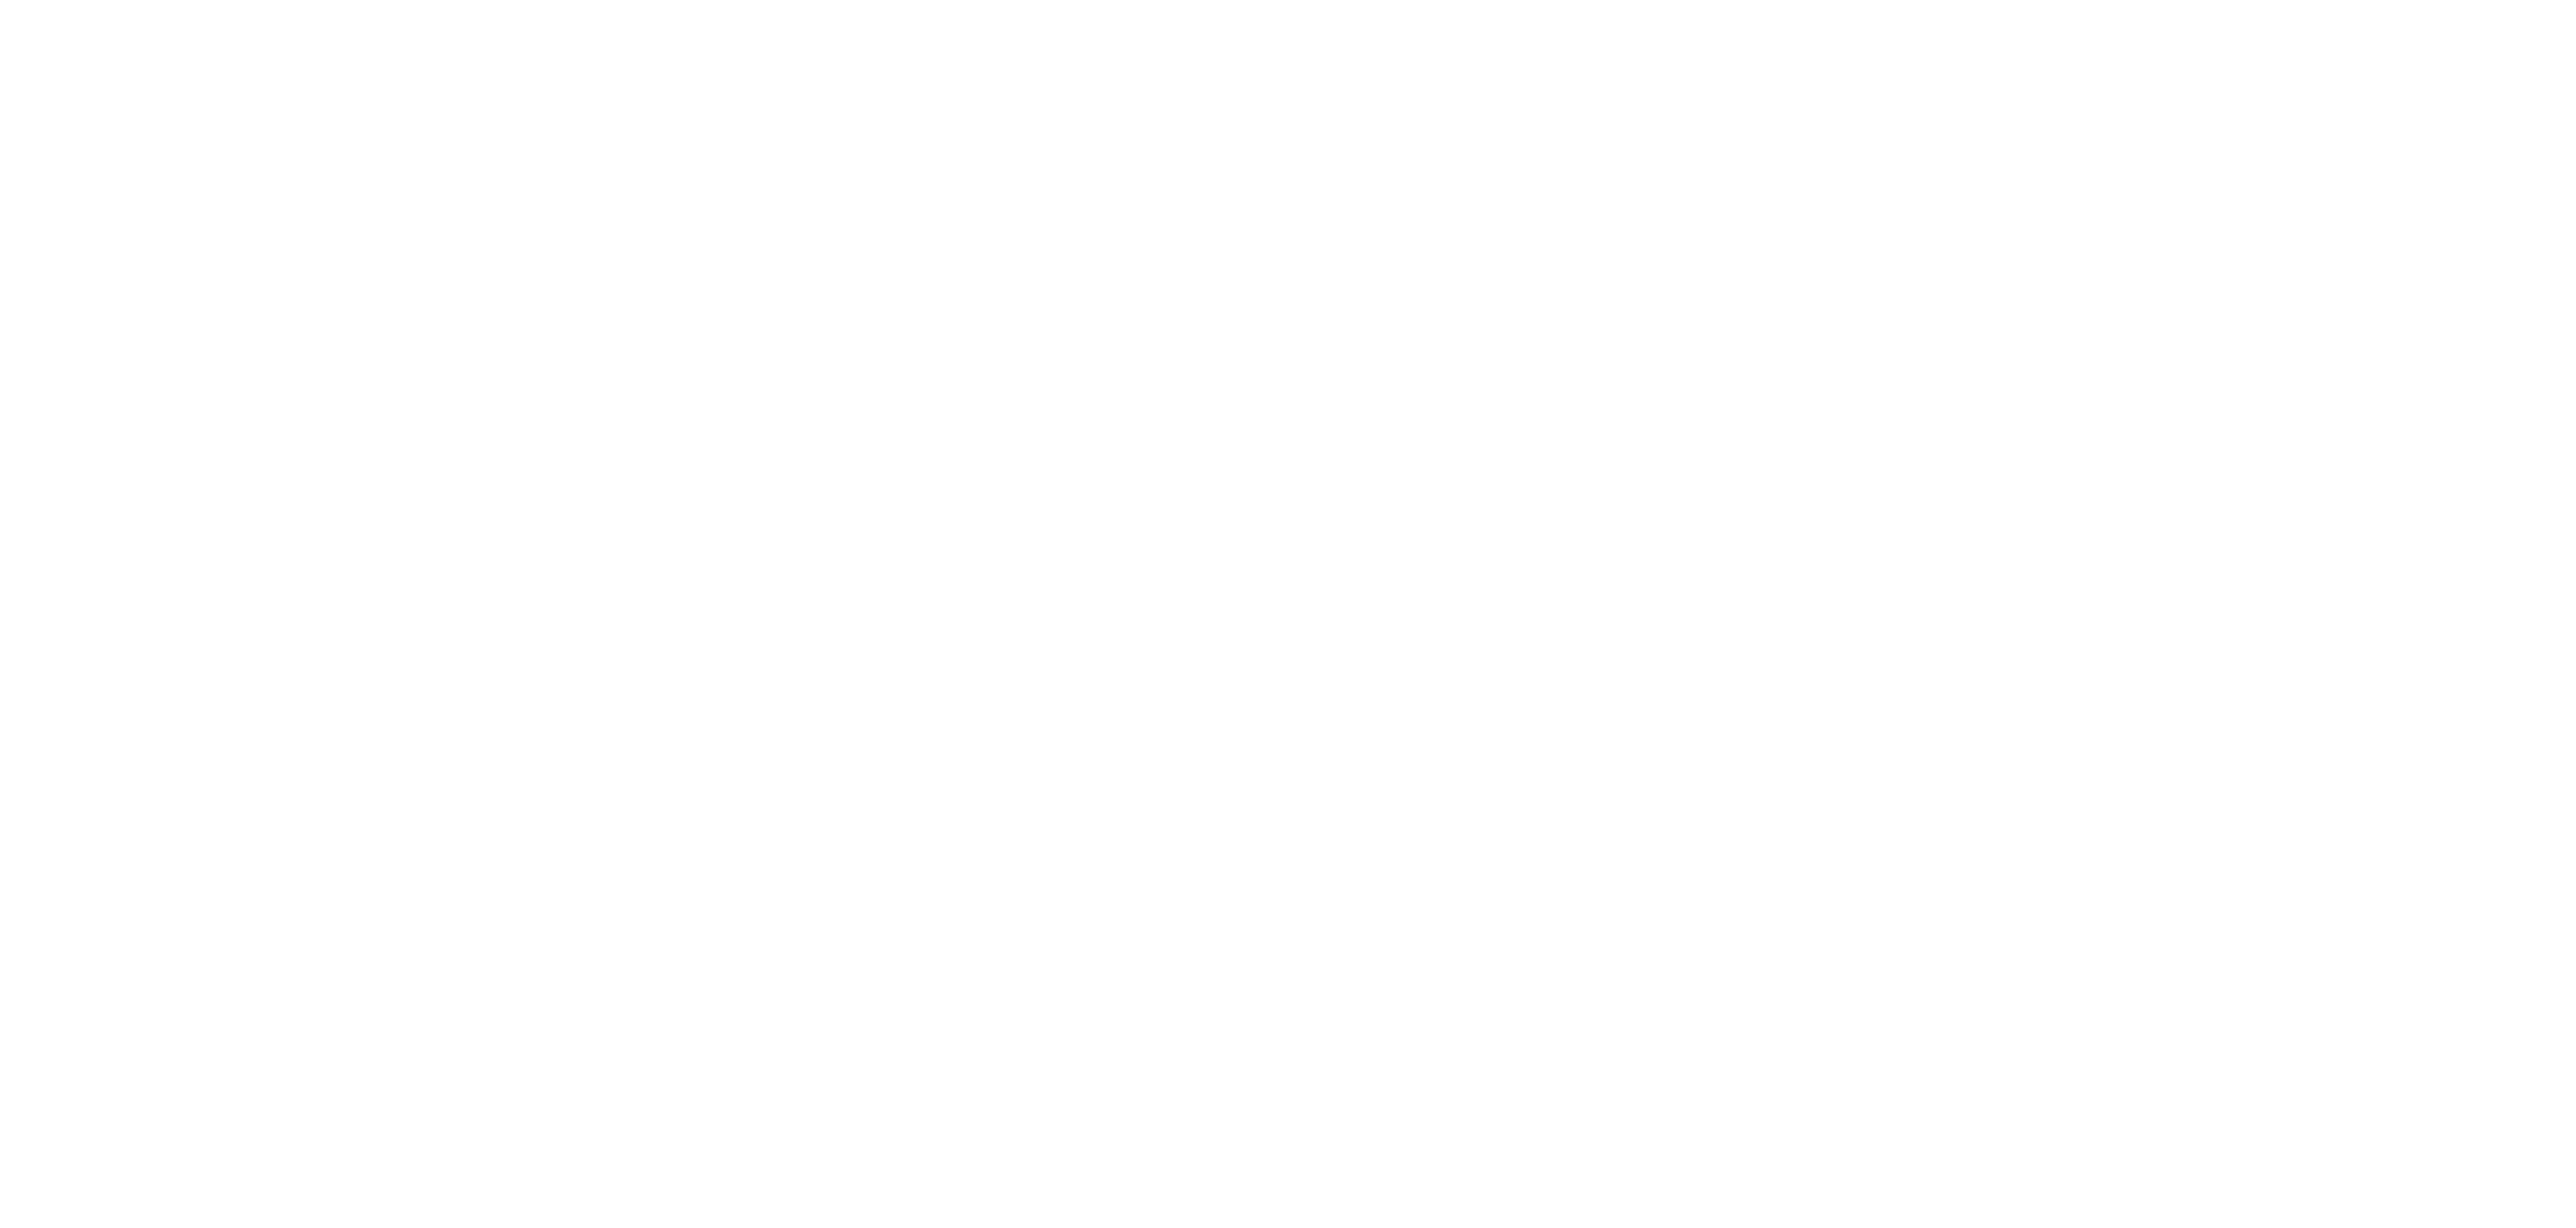 DruidShakespeare – Richard II, Henry IV & Henry V by William Shakespeare in a new adaptation by Mark O'Rowe directed by Garry Hynes in a co-production with Lincoln Center Festival